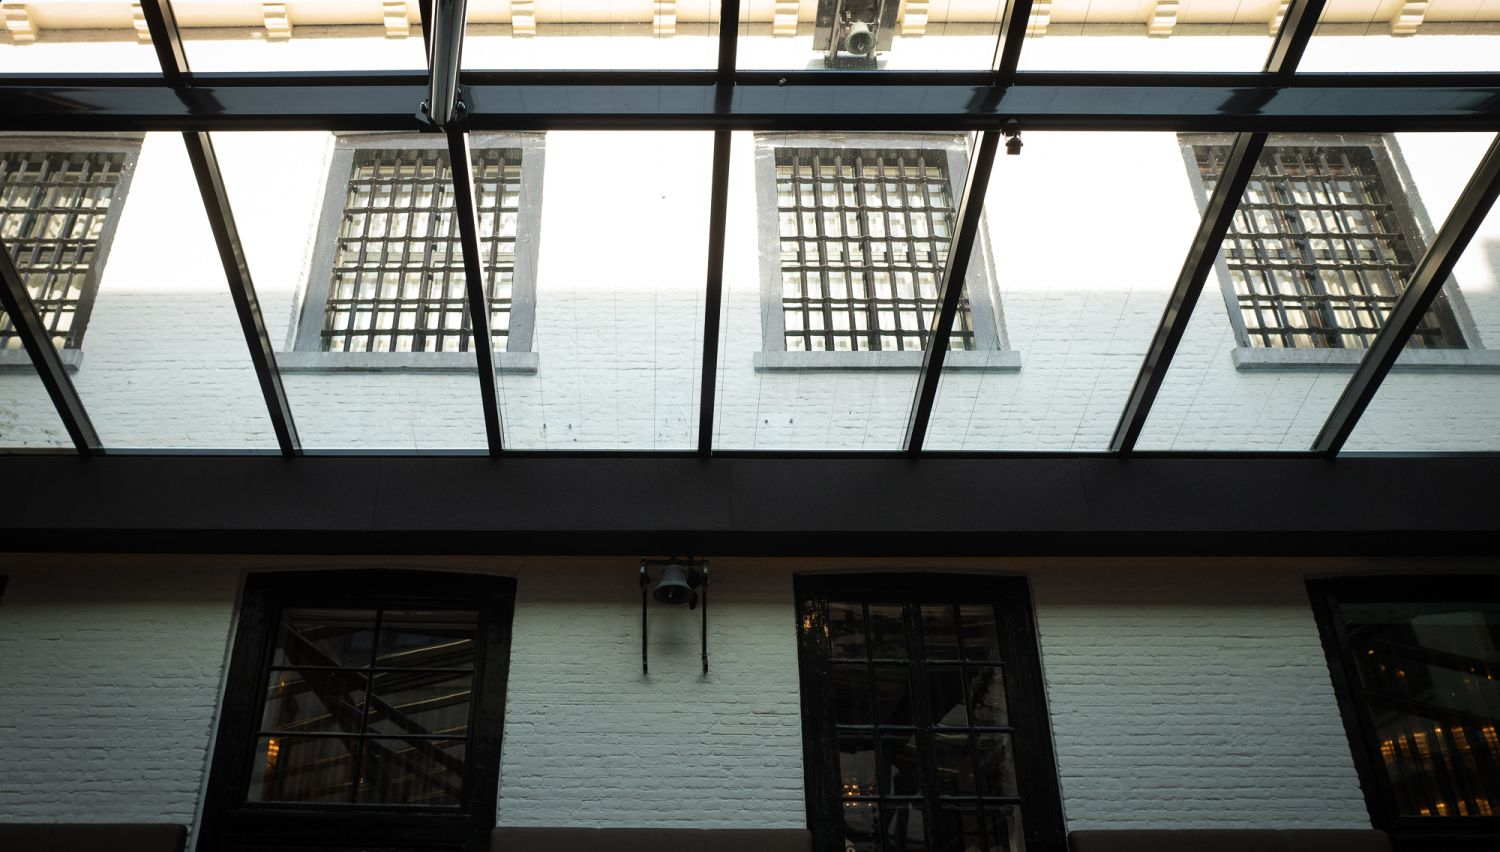 Glass covered courtyard with prison bars on the upper floor windows.